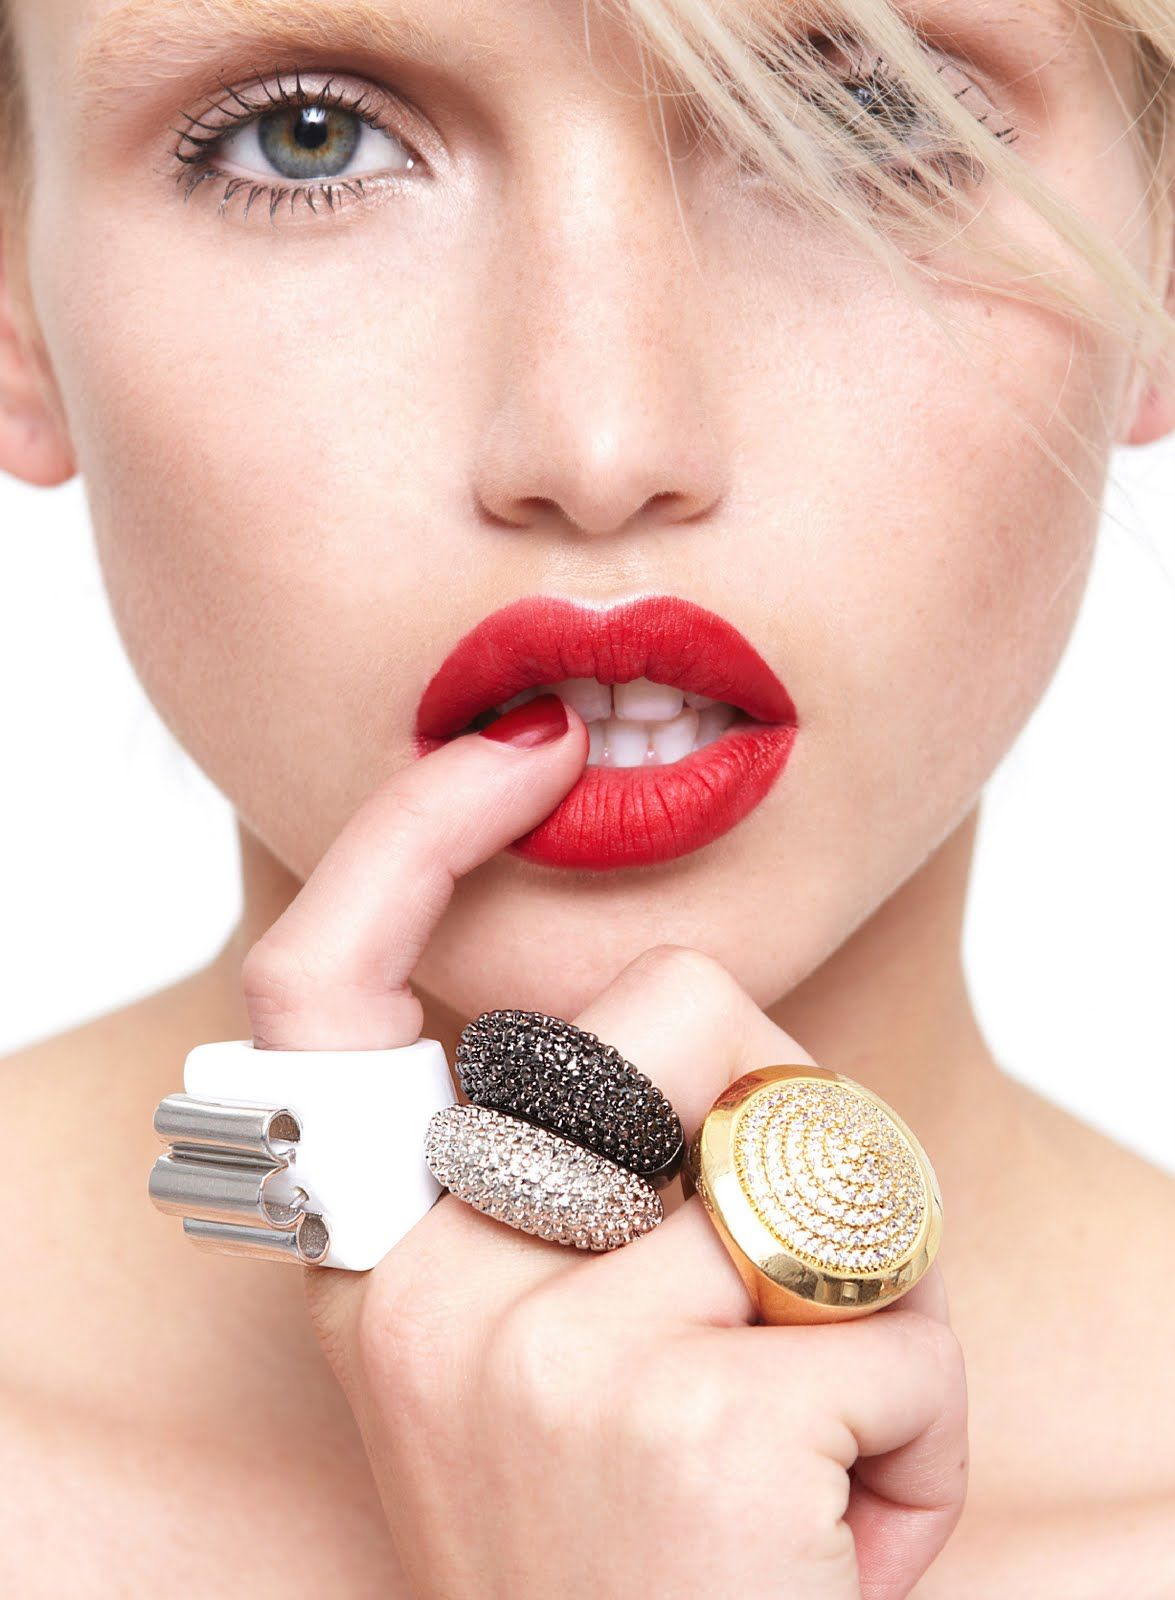 Red Lips And Clunky Rings Adooooooro Aneis Grandes Jewelry